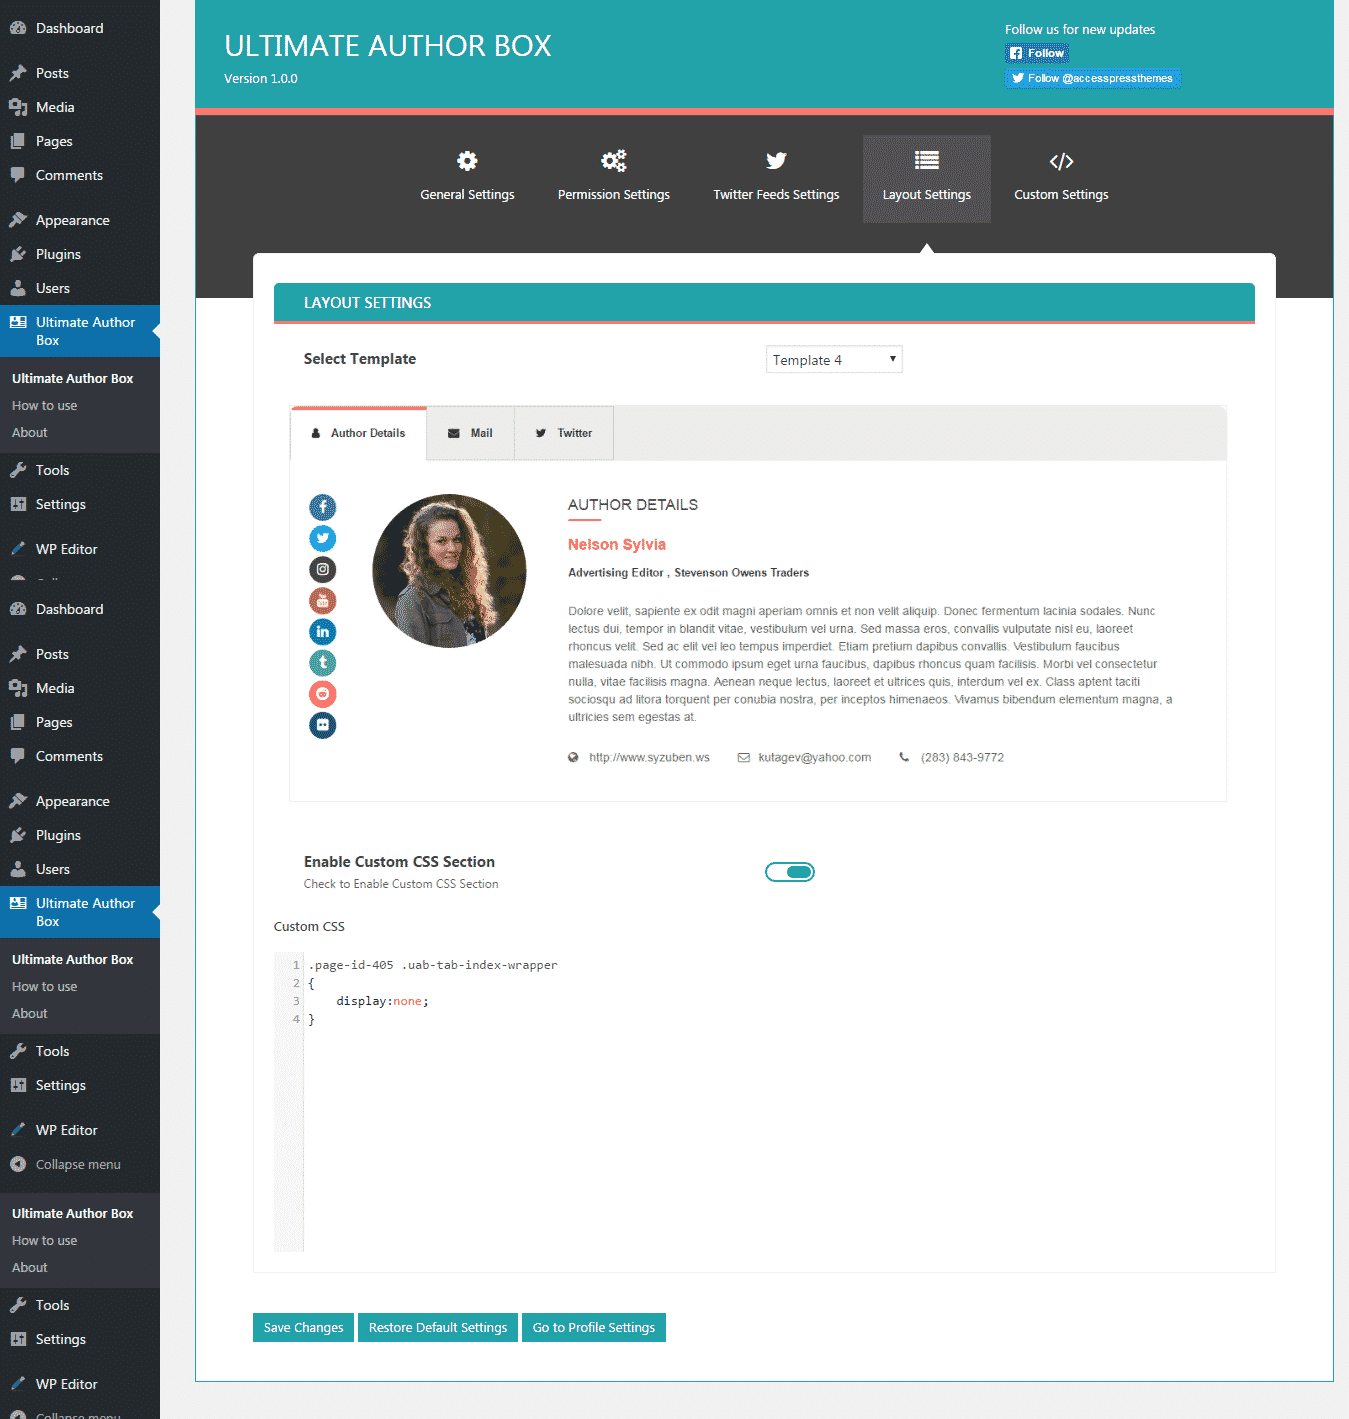 layout settings - How to add an Author Bio Information Box in your WordPress Blog Post? (Step by Step Guide)